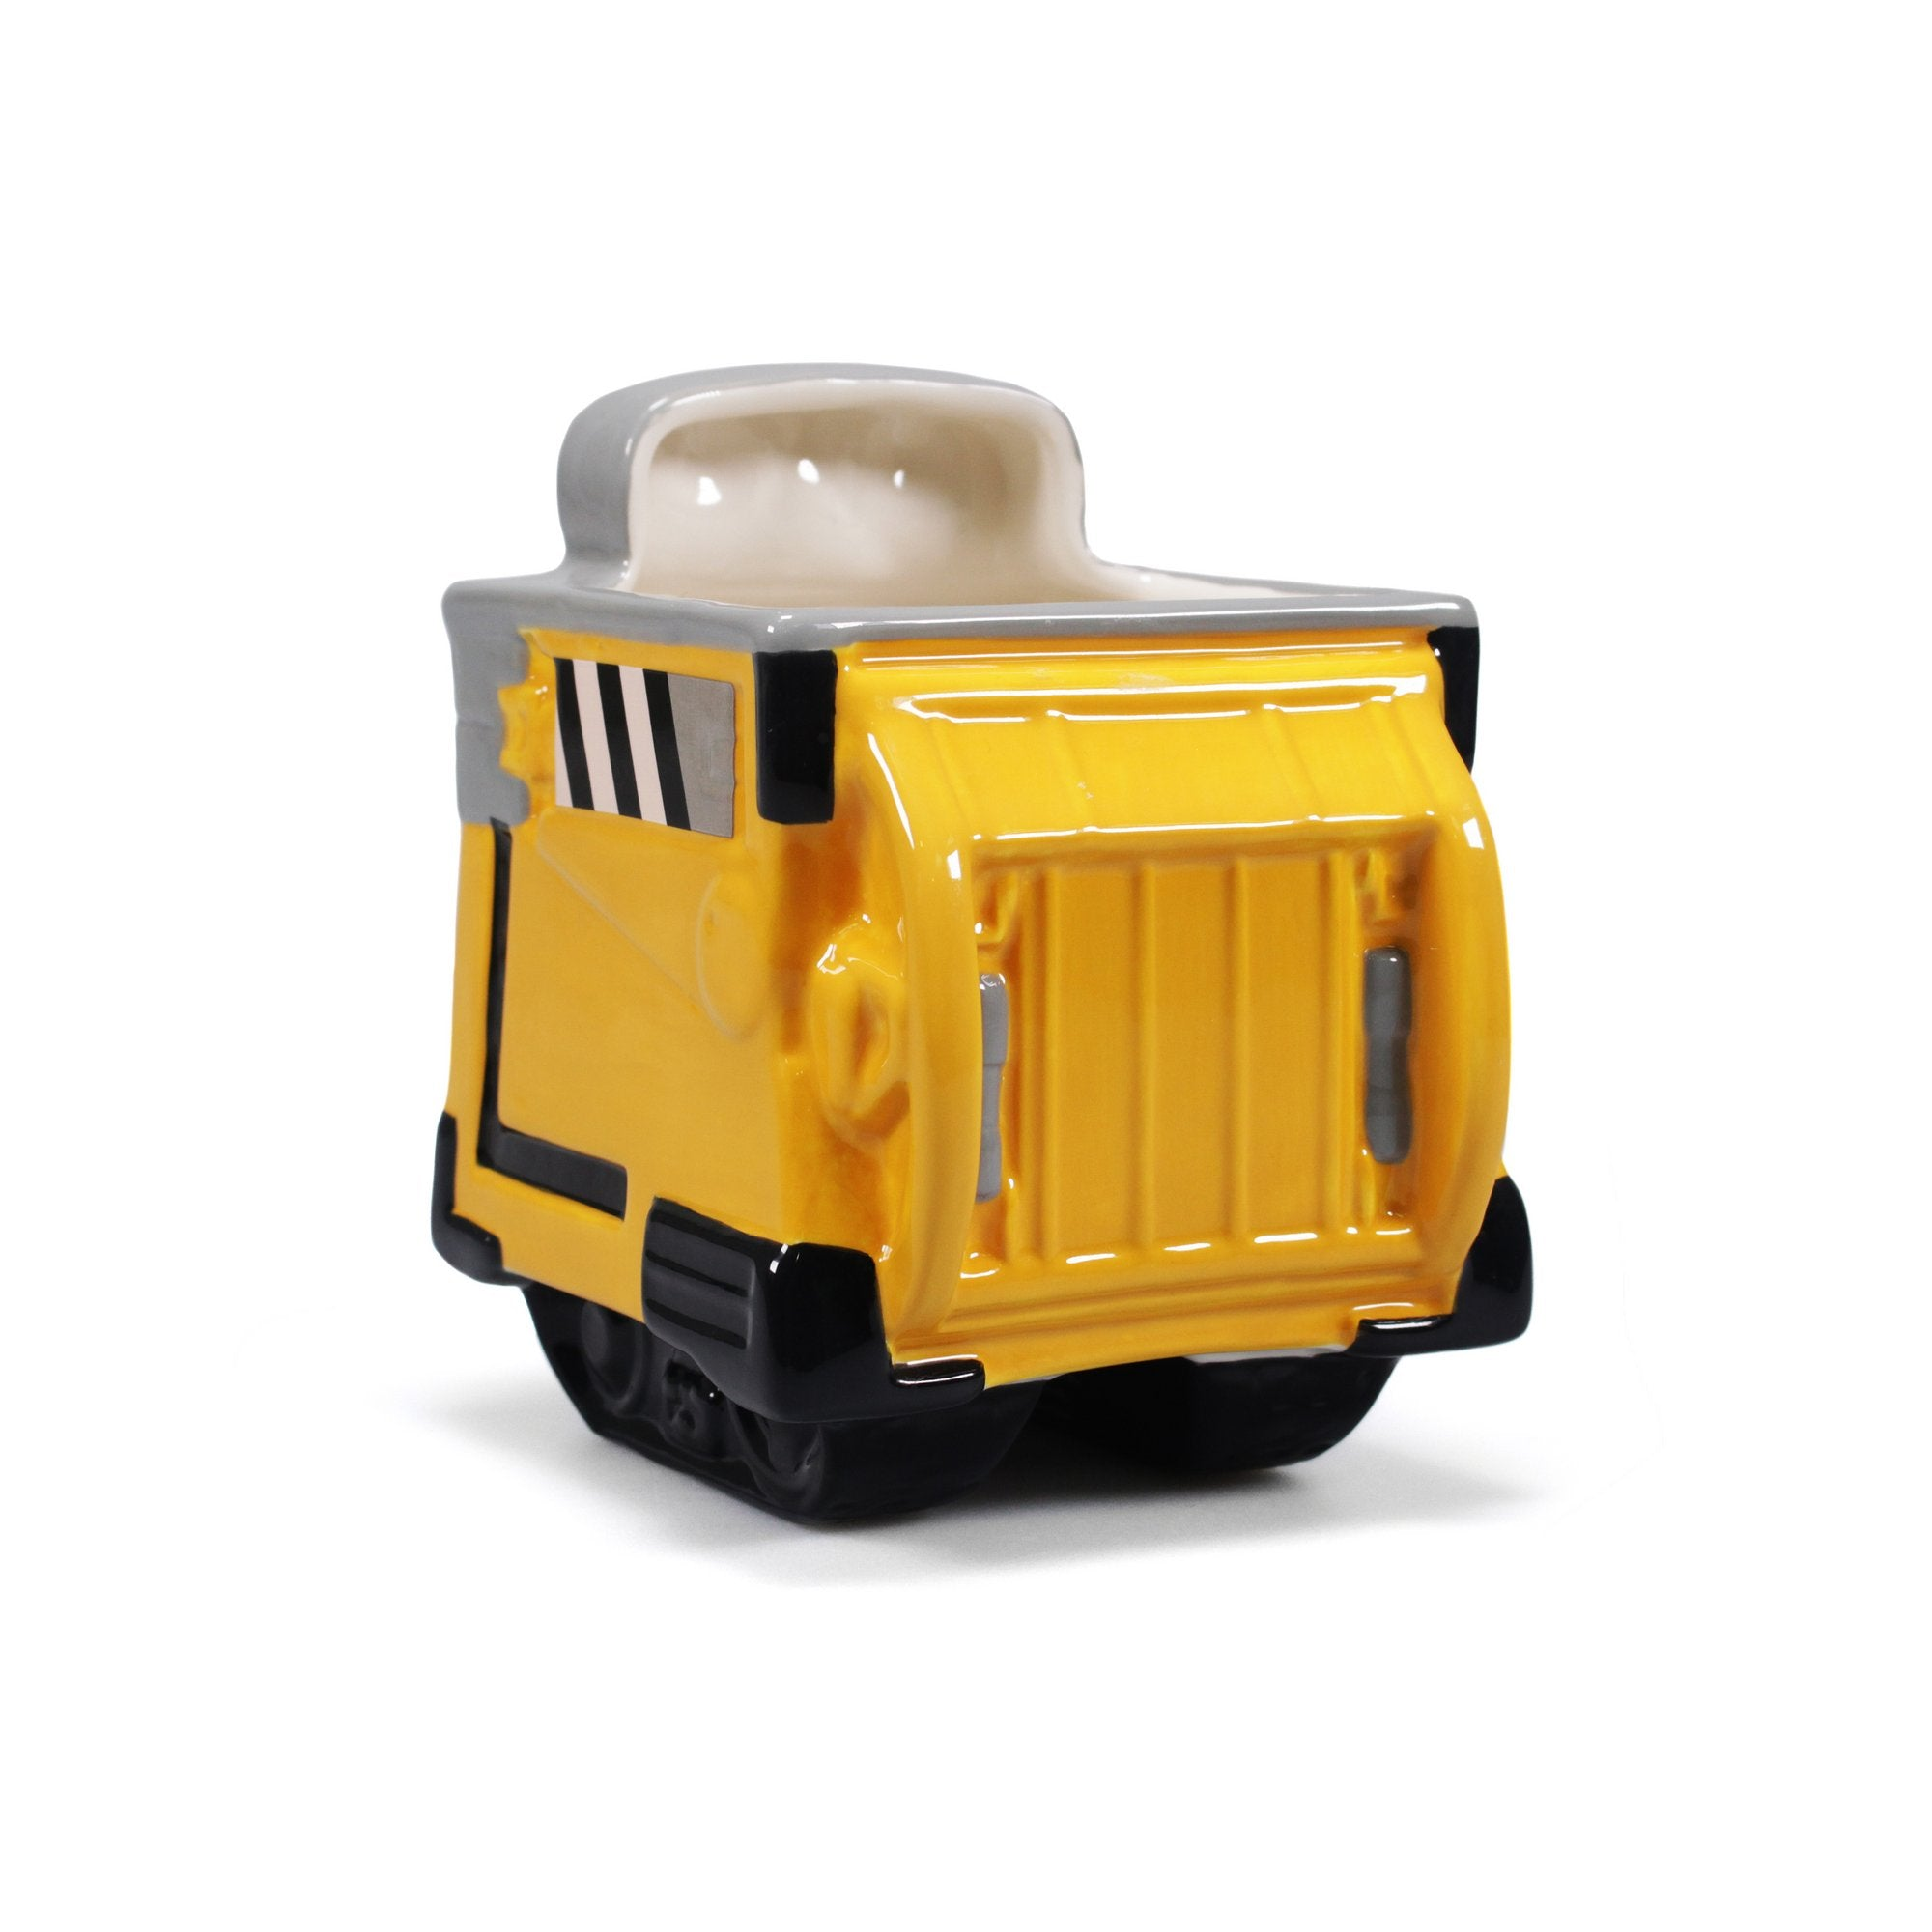 Wall-E Desk Tidy - Wall-E